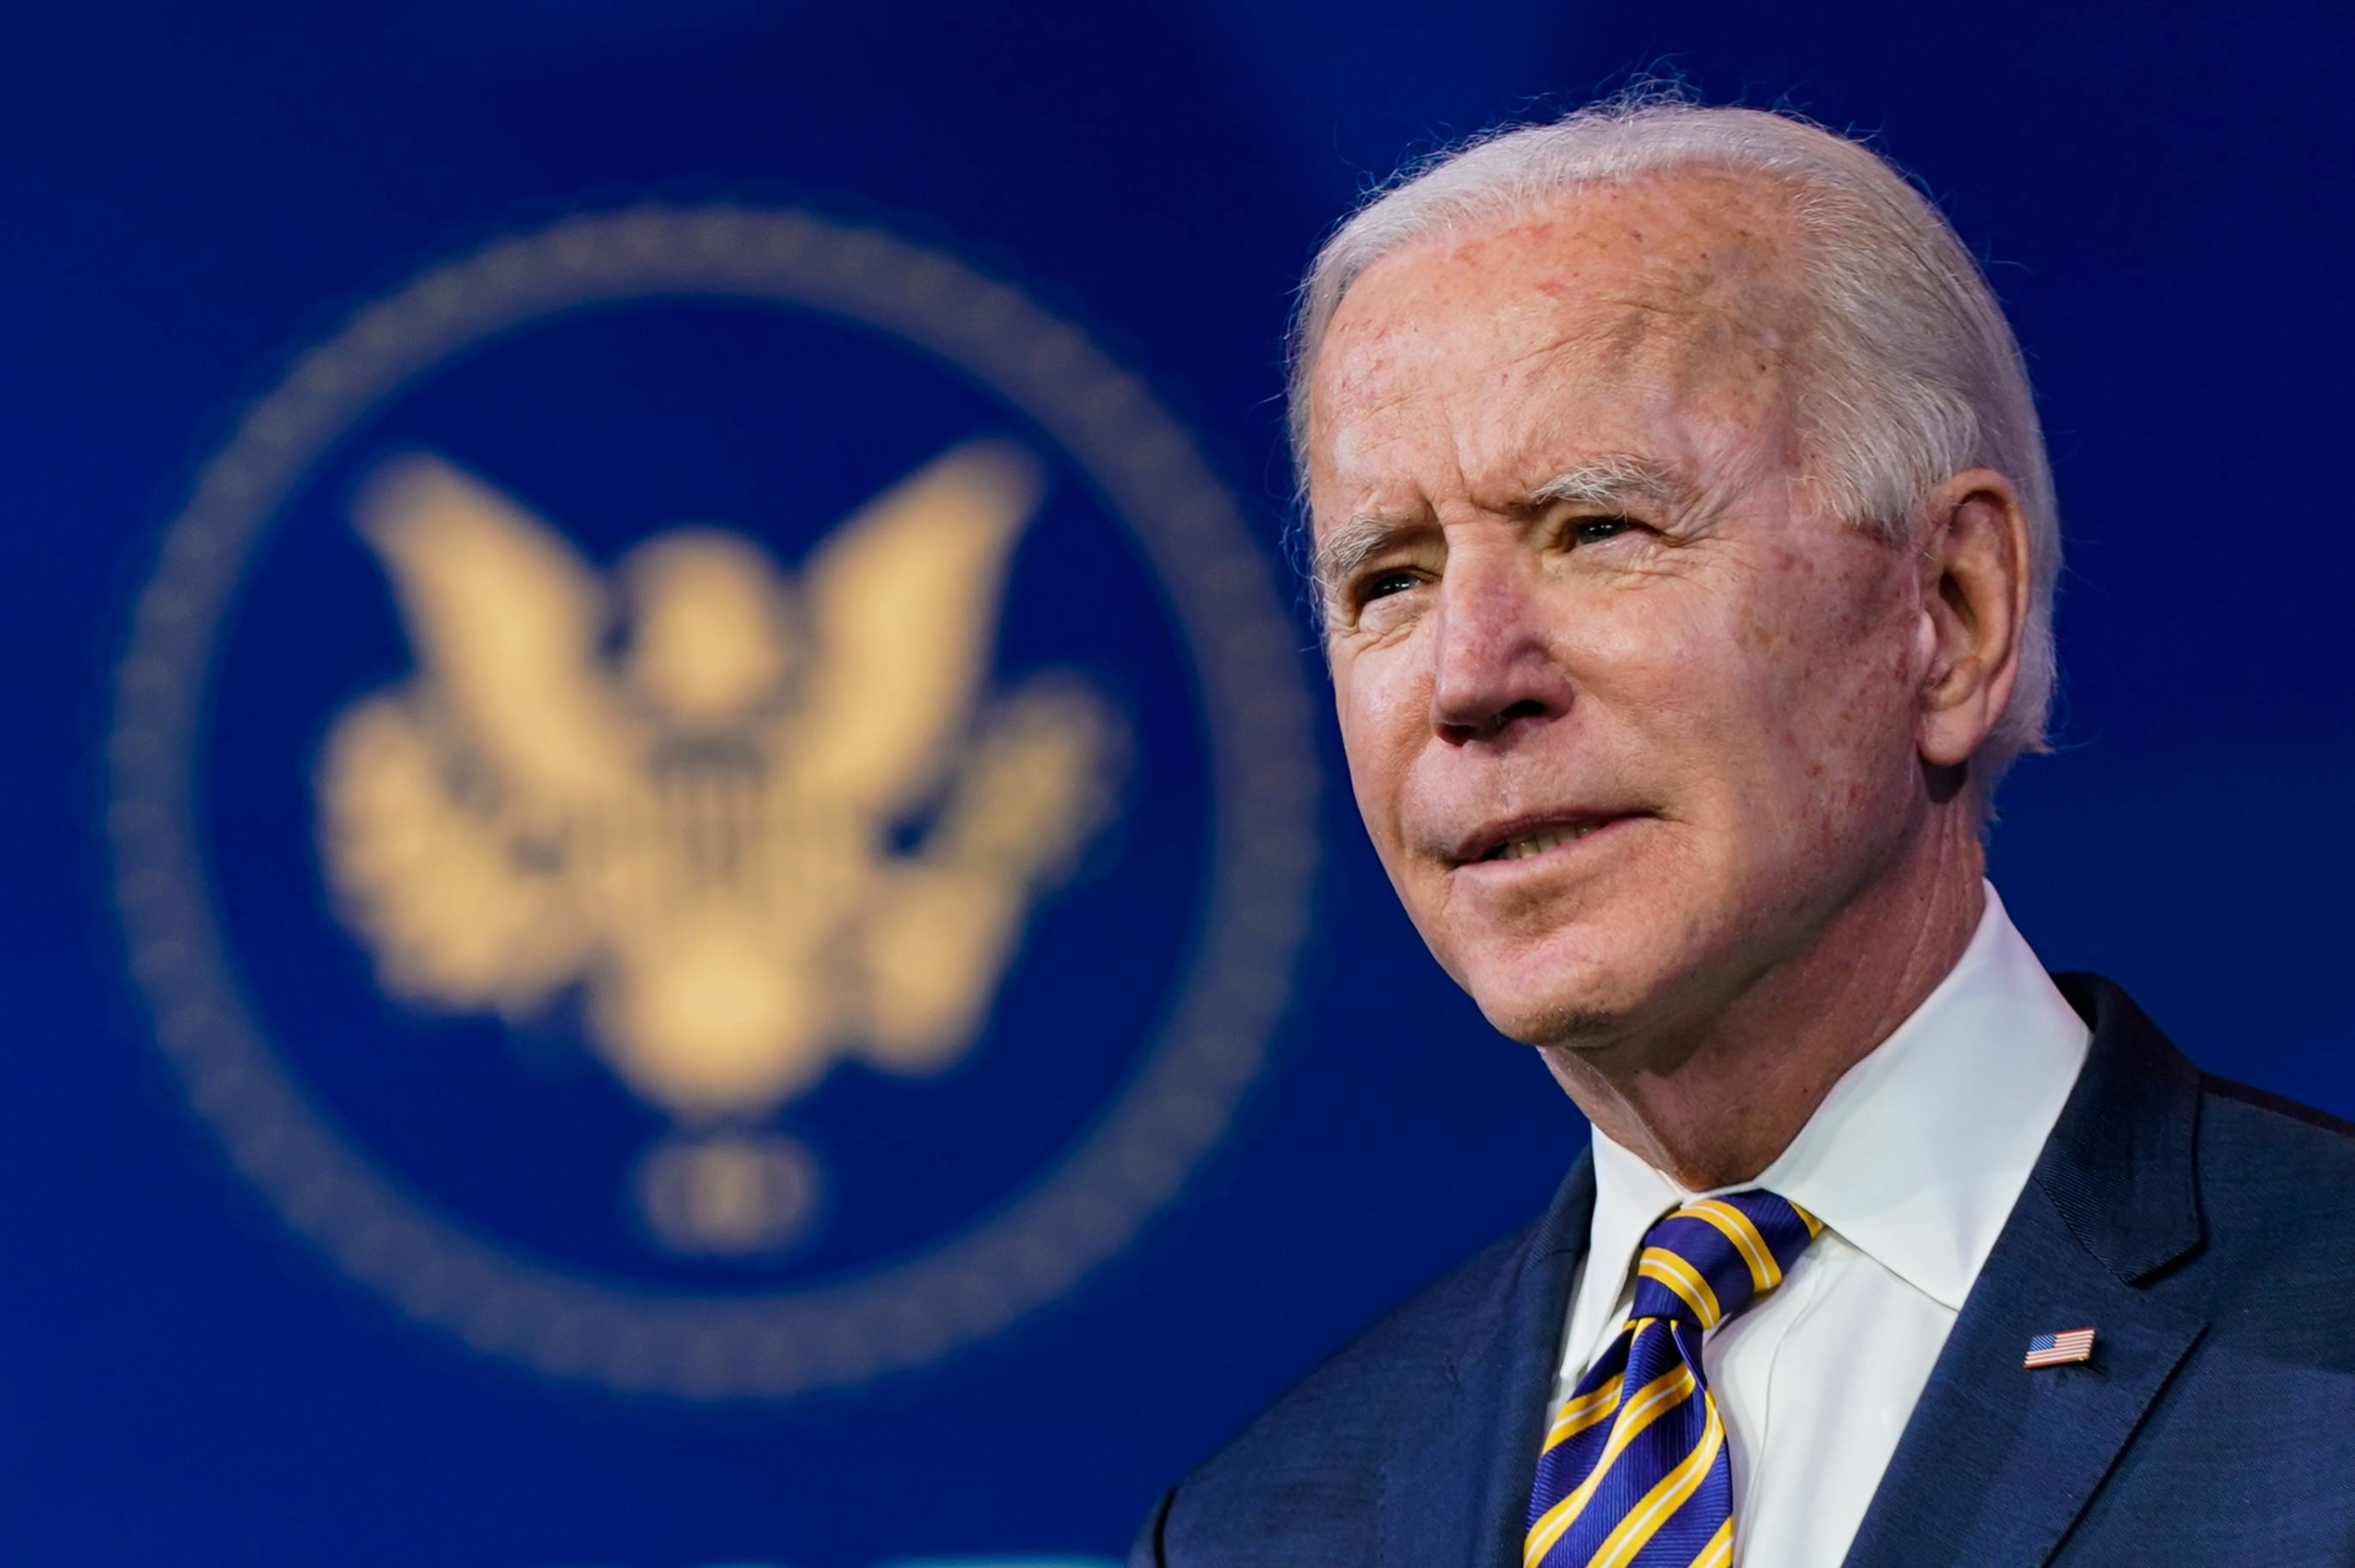 U.S. President-elect Joe Biden speaks about the coronavirus pandemic, at The Queen Theater in Wilmington, Delaware, on Dec. 29.  | AMR ALFIKY/THE NEW YORK TIMES